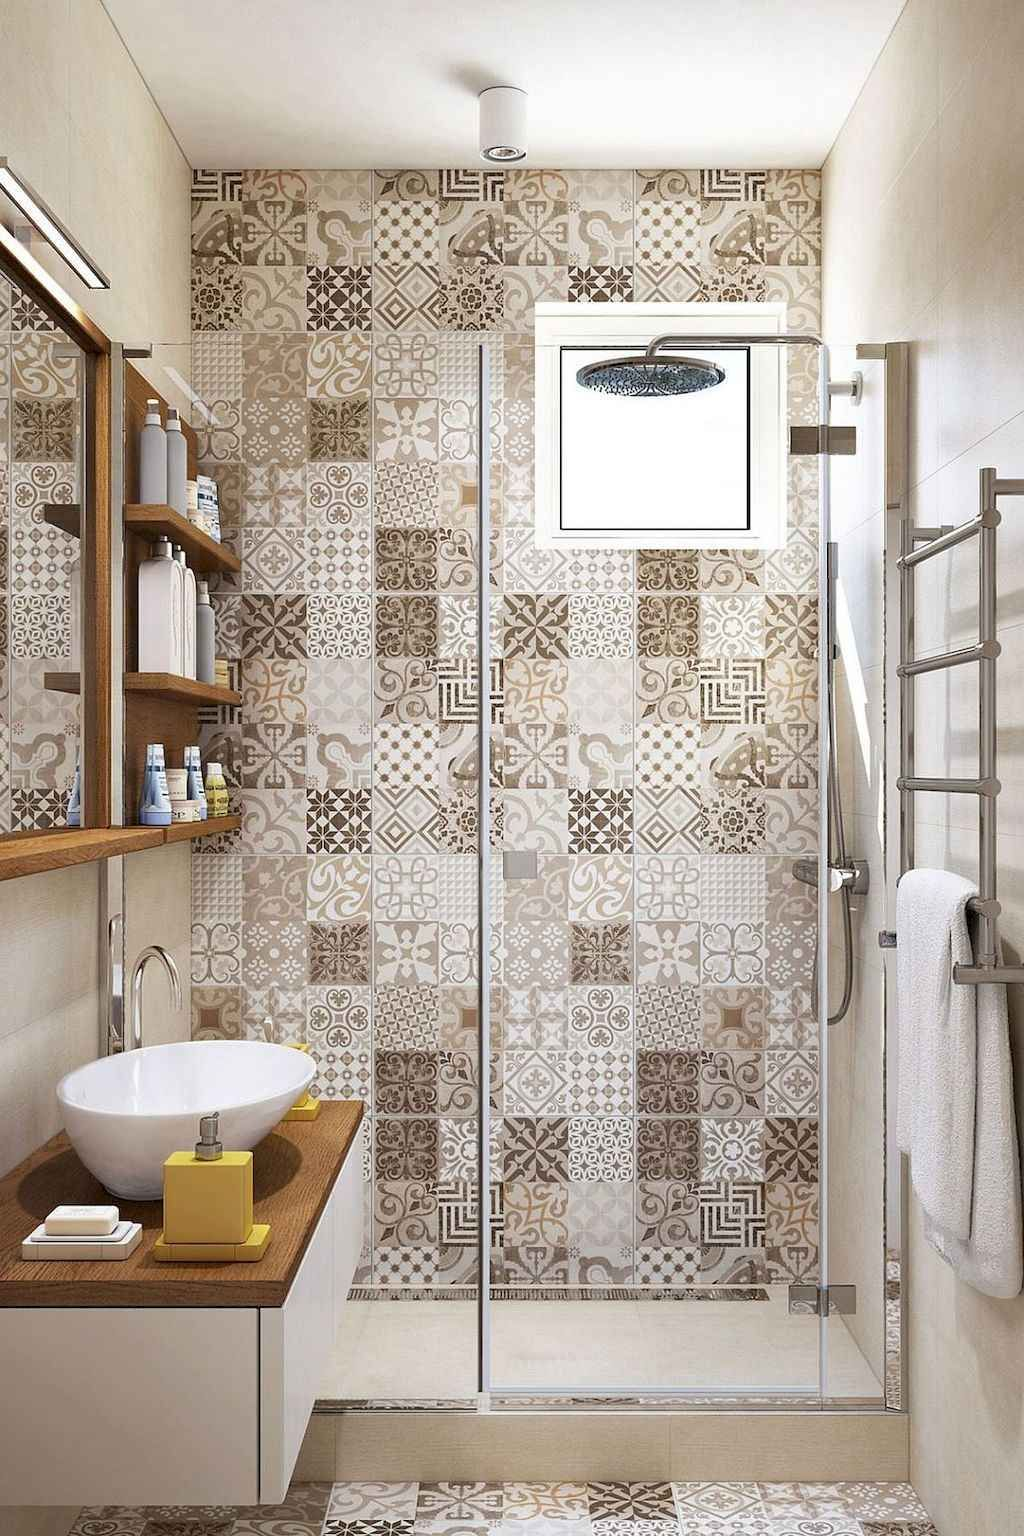 80 cool small bathroom remodel ideas with images on cool small bathroom design ideas id=90707